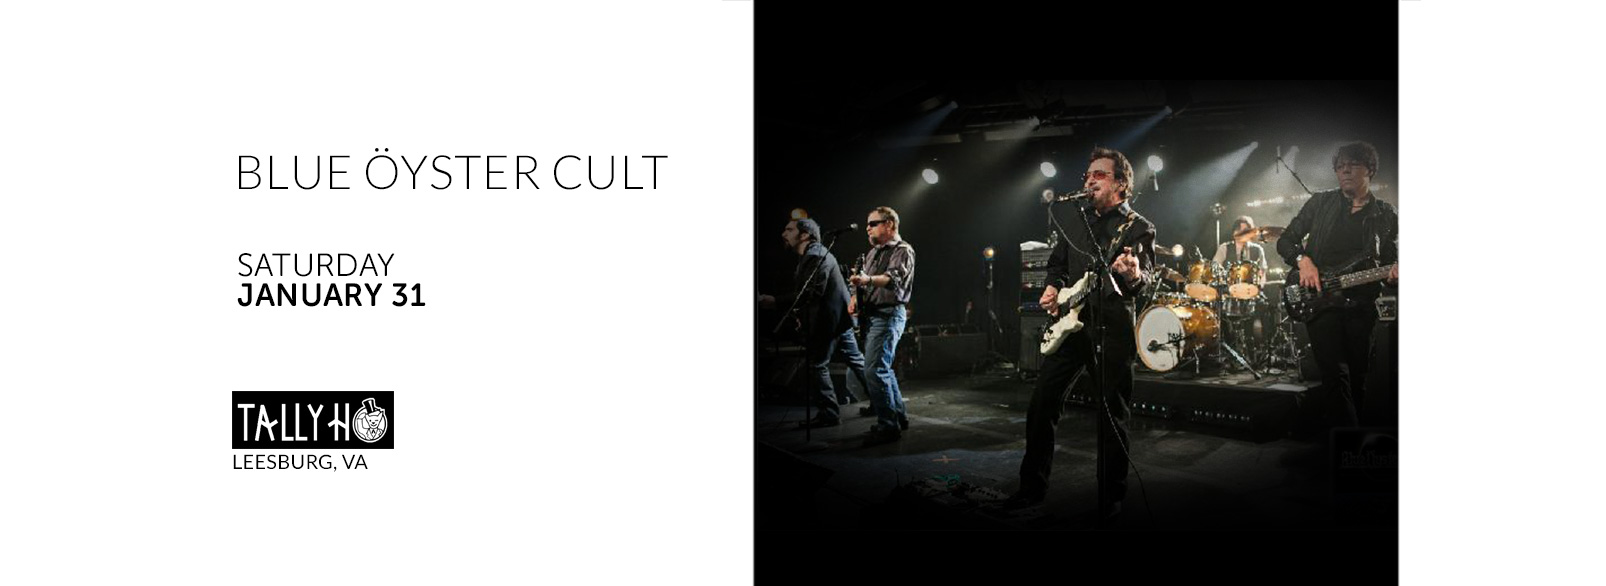 Blue Oyster Cult @ Tally Ho Theatre